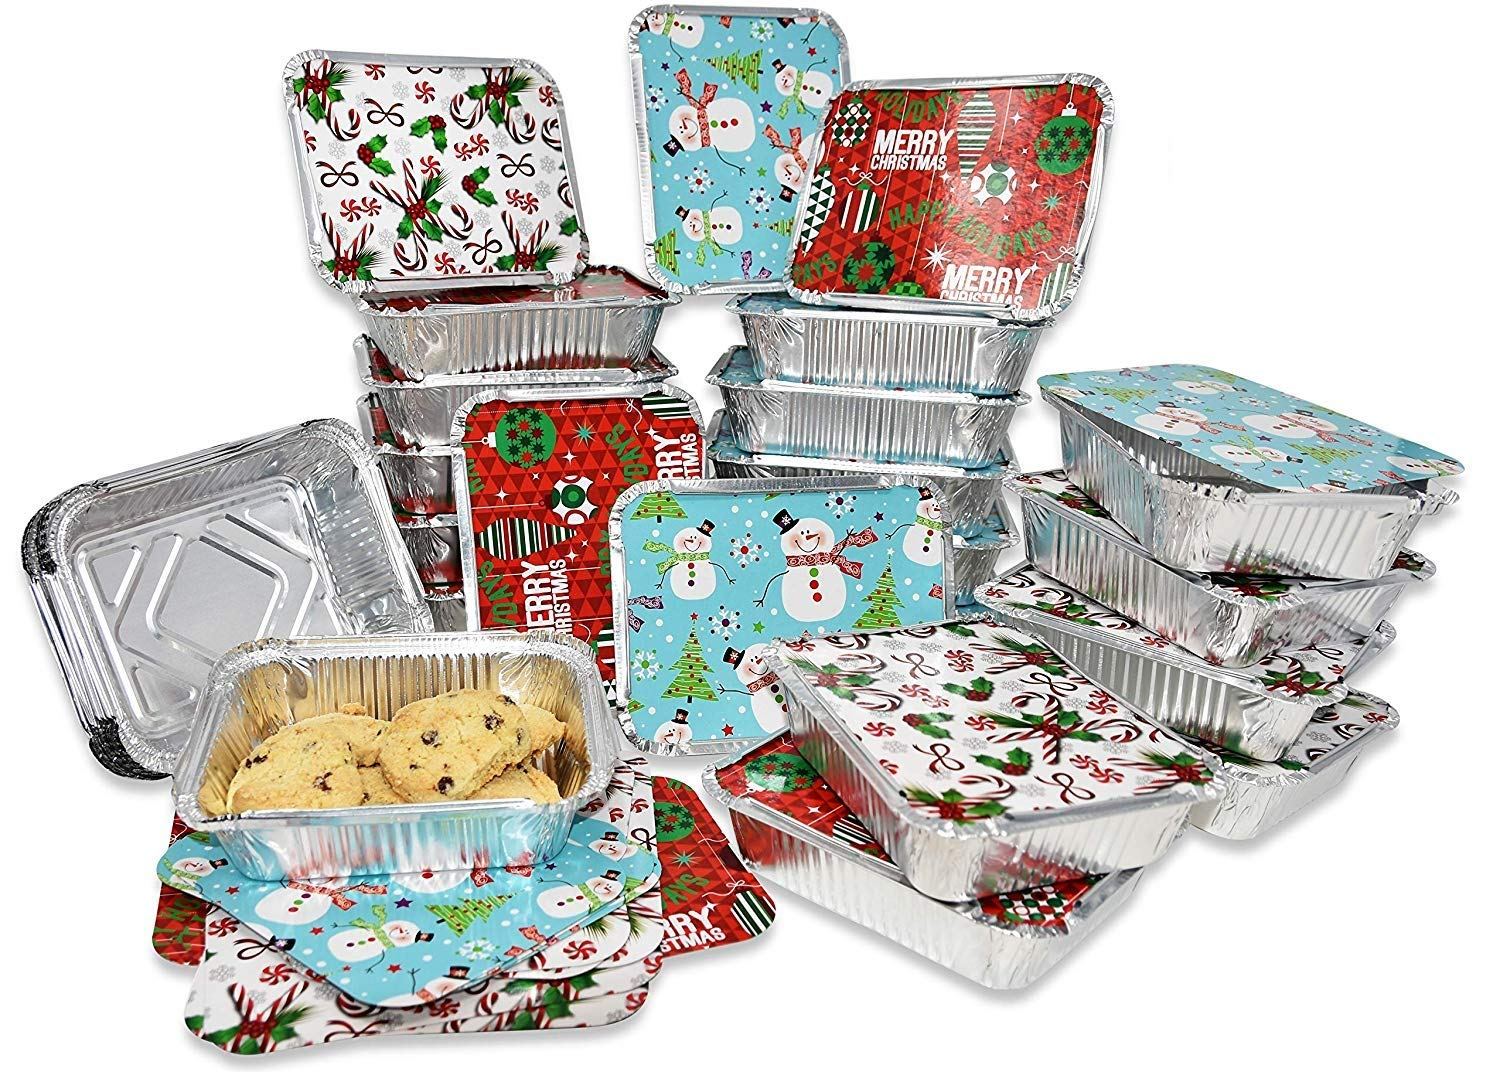 "Gift Boutique 36 Count Christmas Tin Foil Containers with Lid Covers For Cookies in 4 Holiday Designs Aluminum Disposable Food Storage Pans For Treat Exchange & Goodie Party Leftovers 5""W X 7""L X 1.5"""